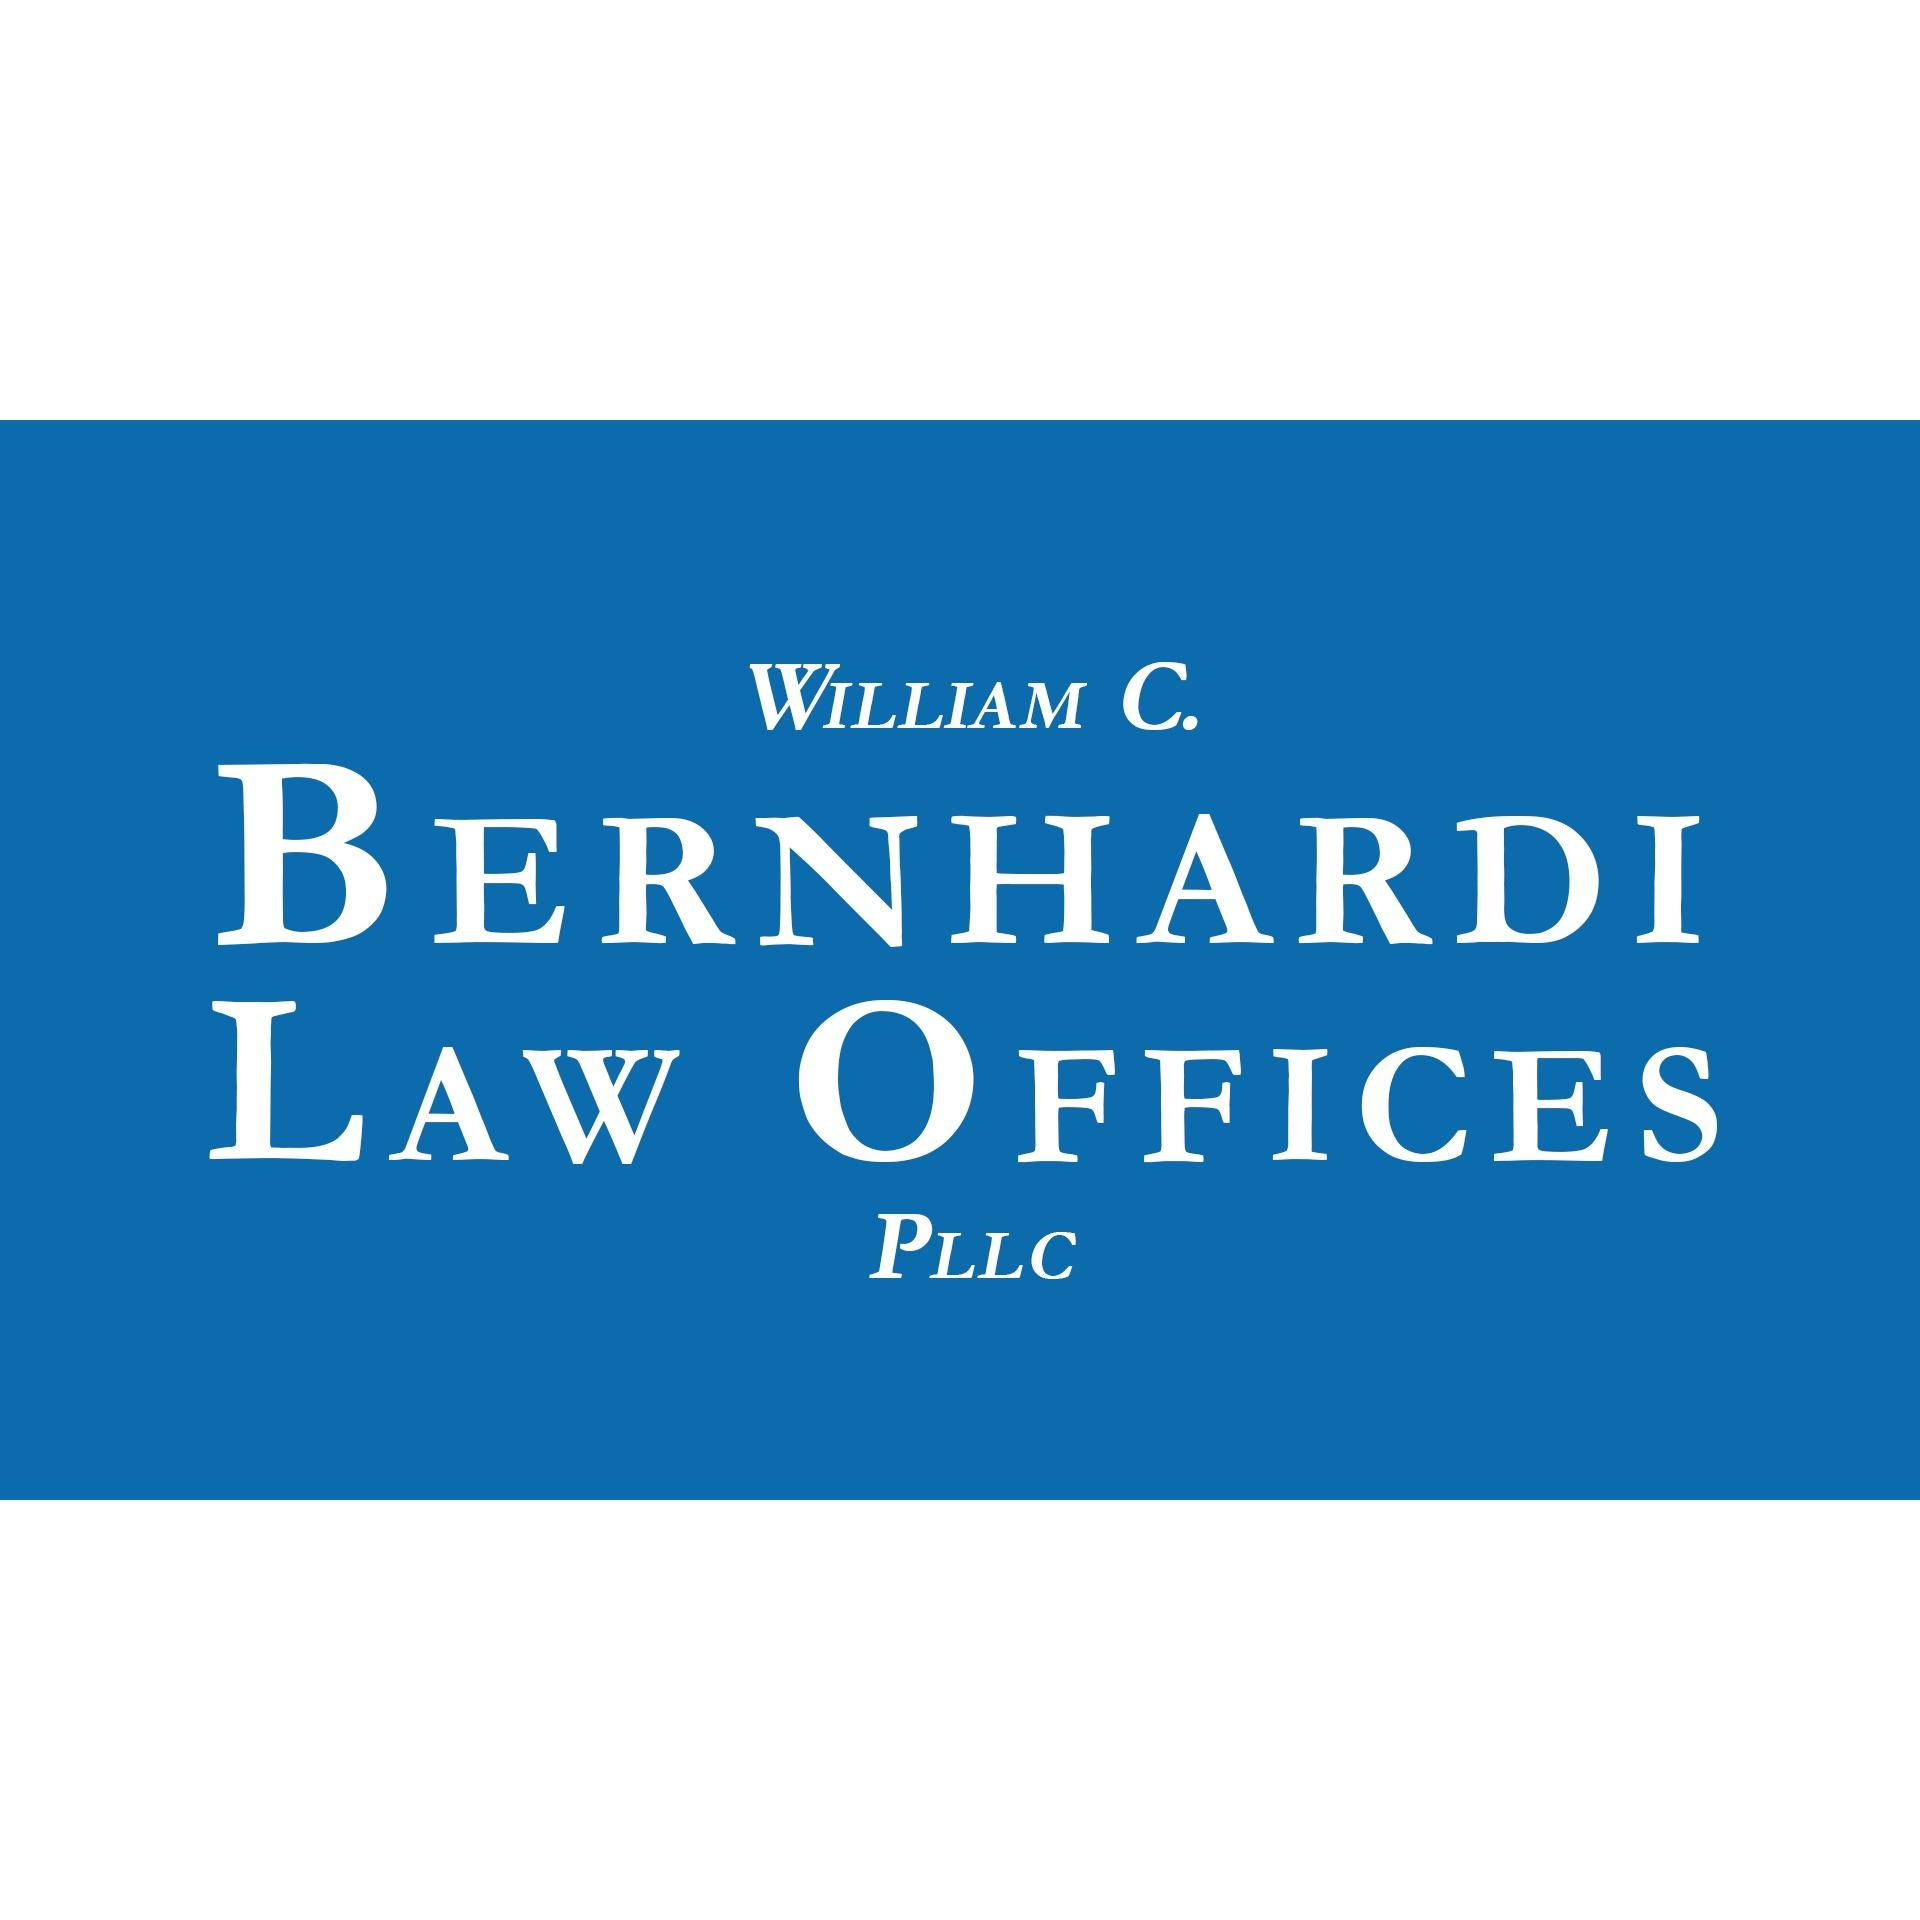 William C. Bernhardi Law Offices, PLLC